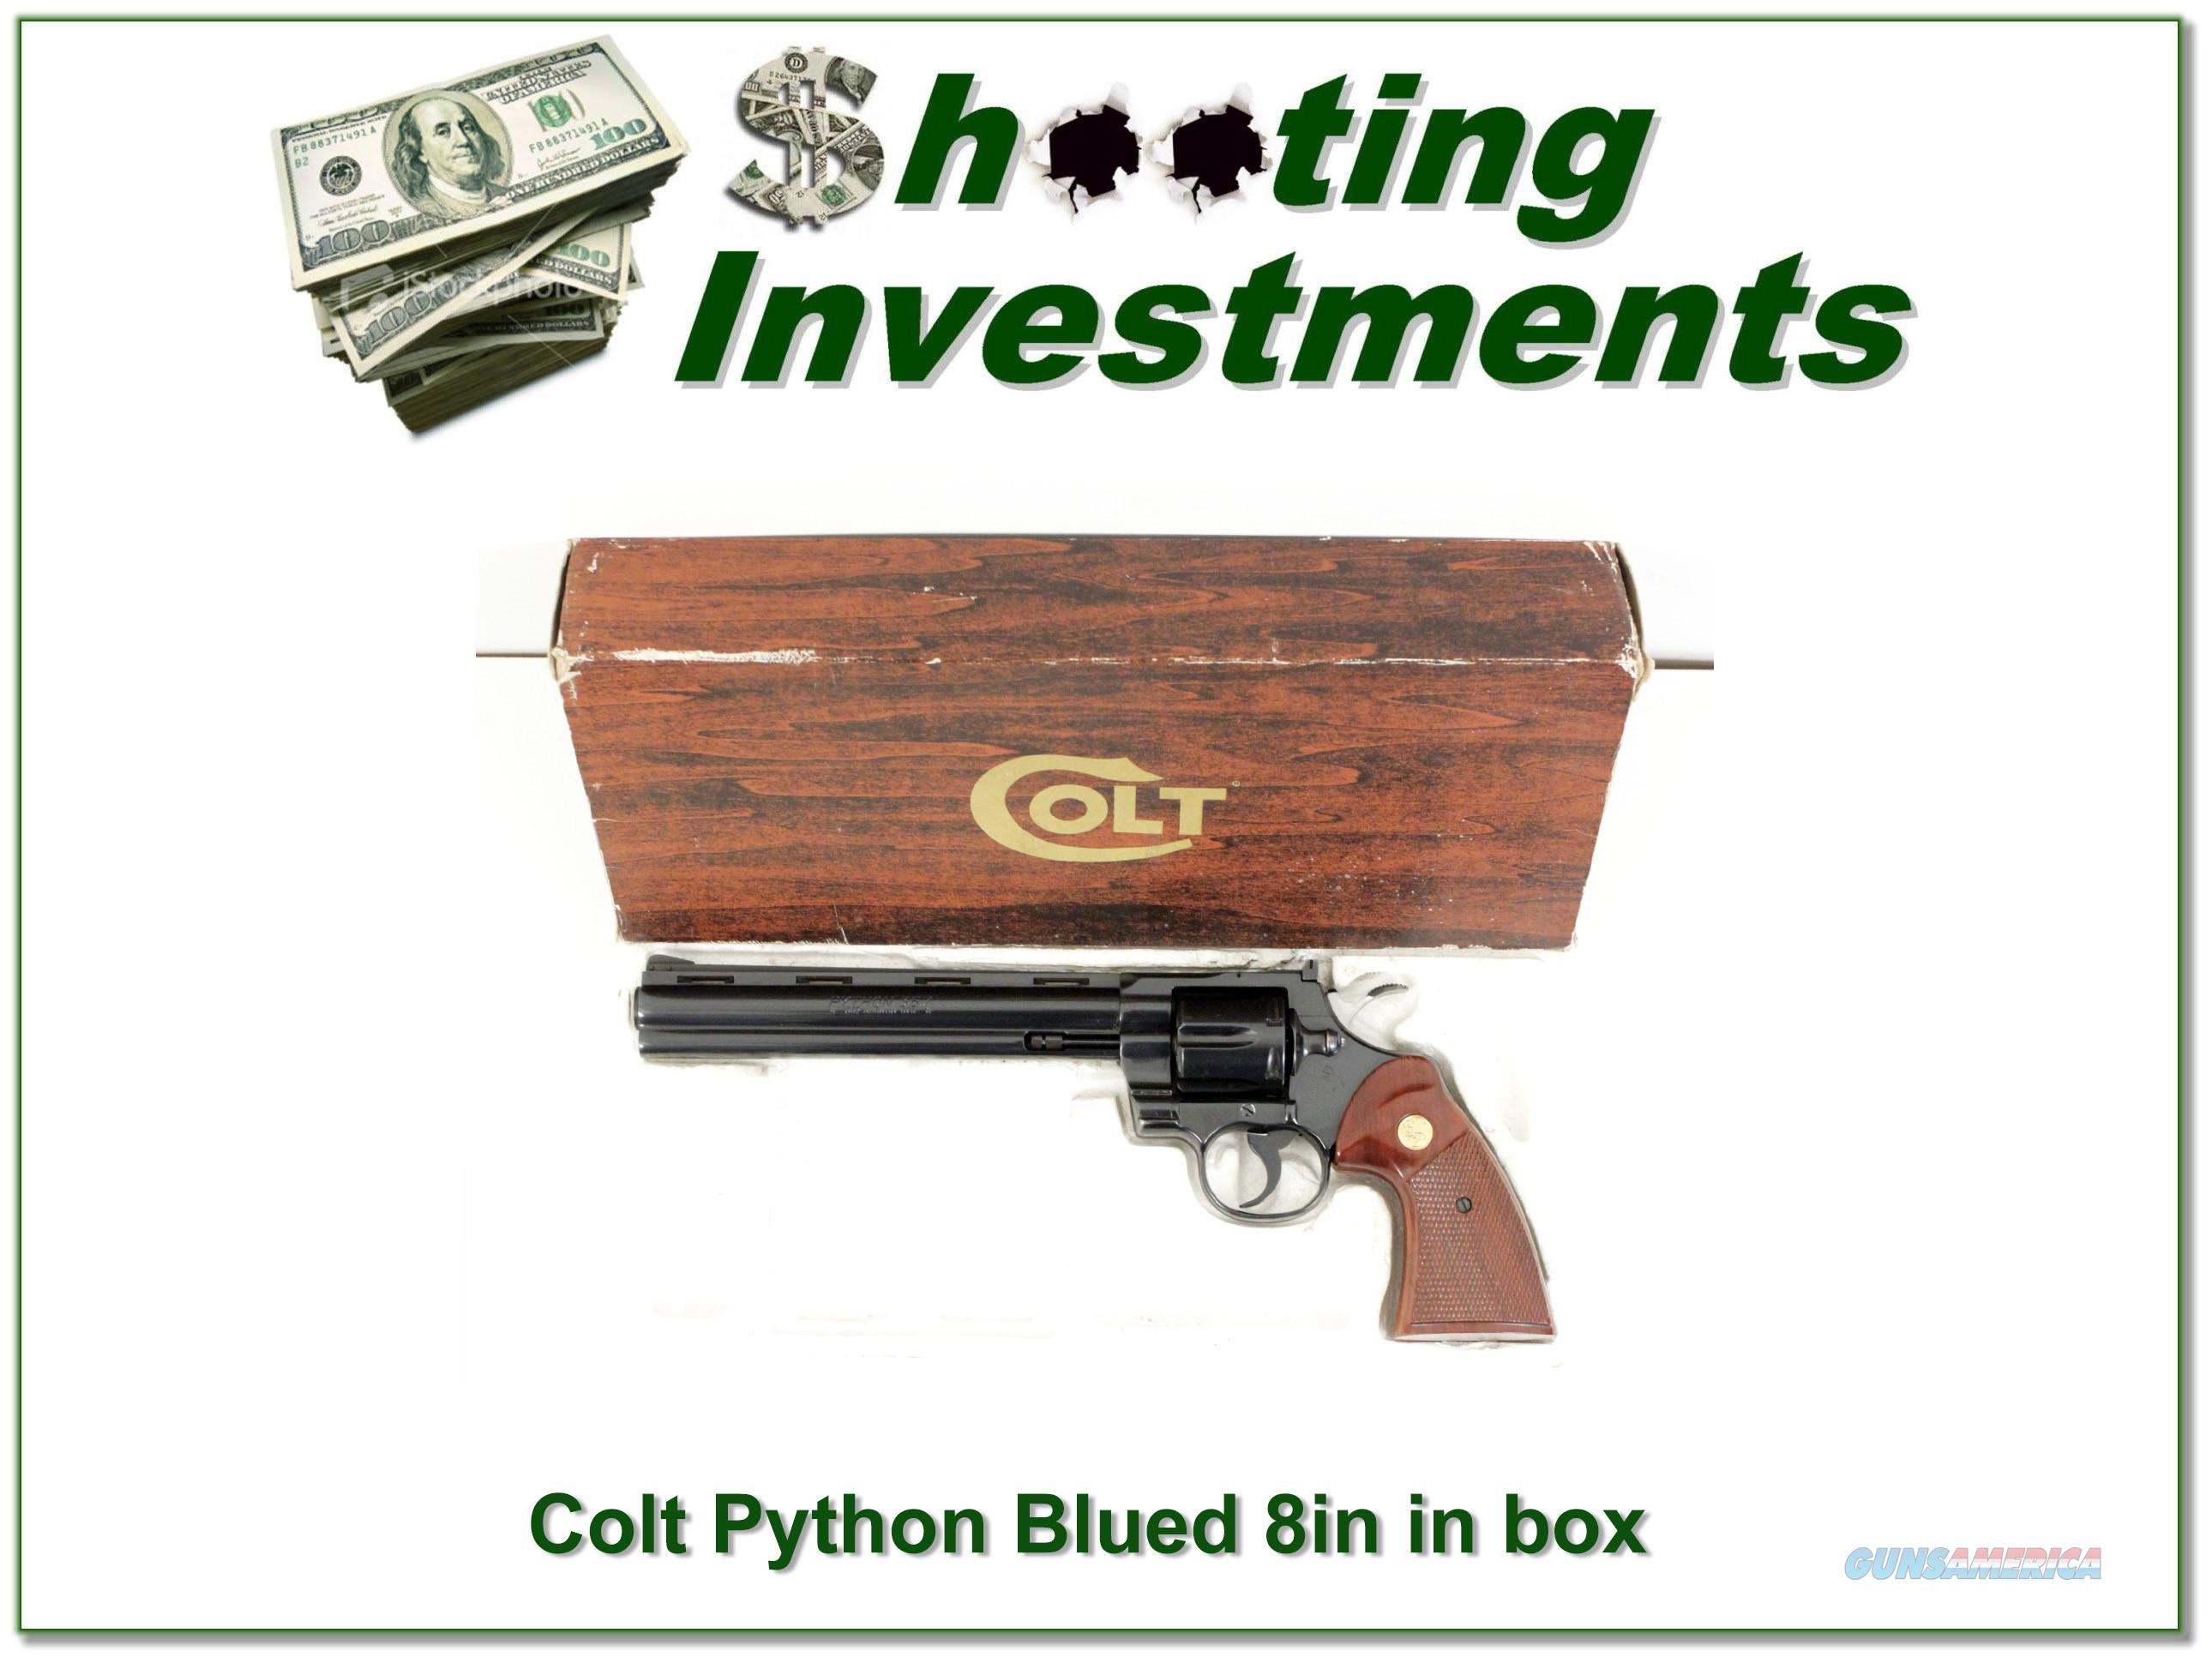 Colt Python 357 Mag 8in Blued in box!  Guns > Pistols > Colt Double Action Revolvers- Modern